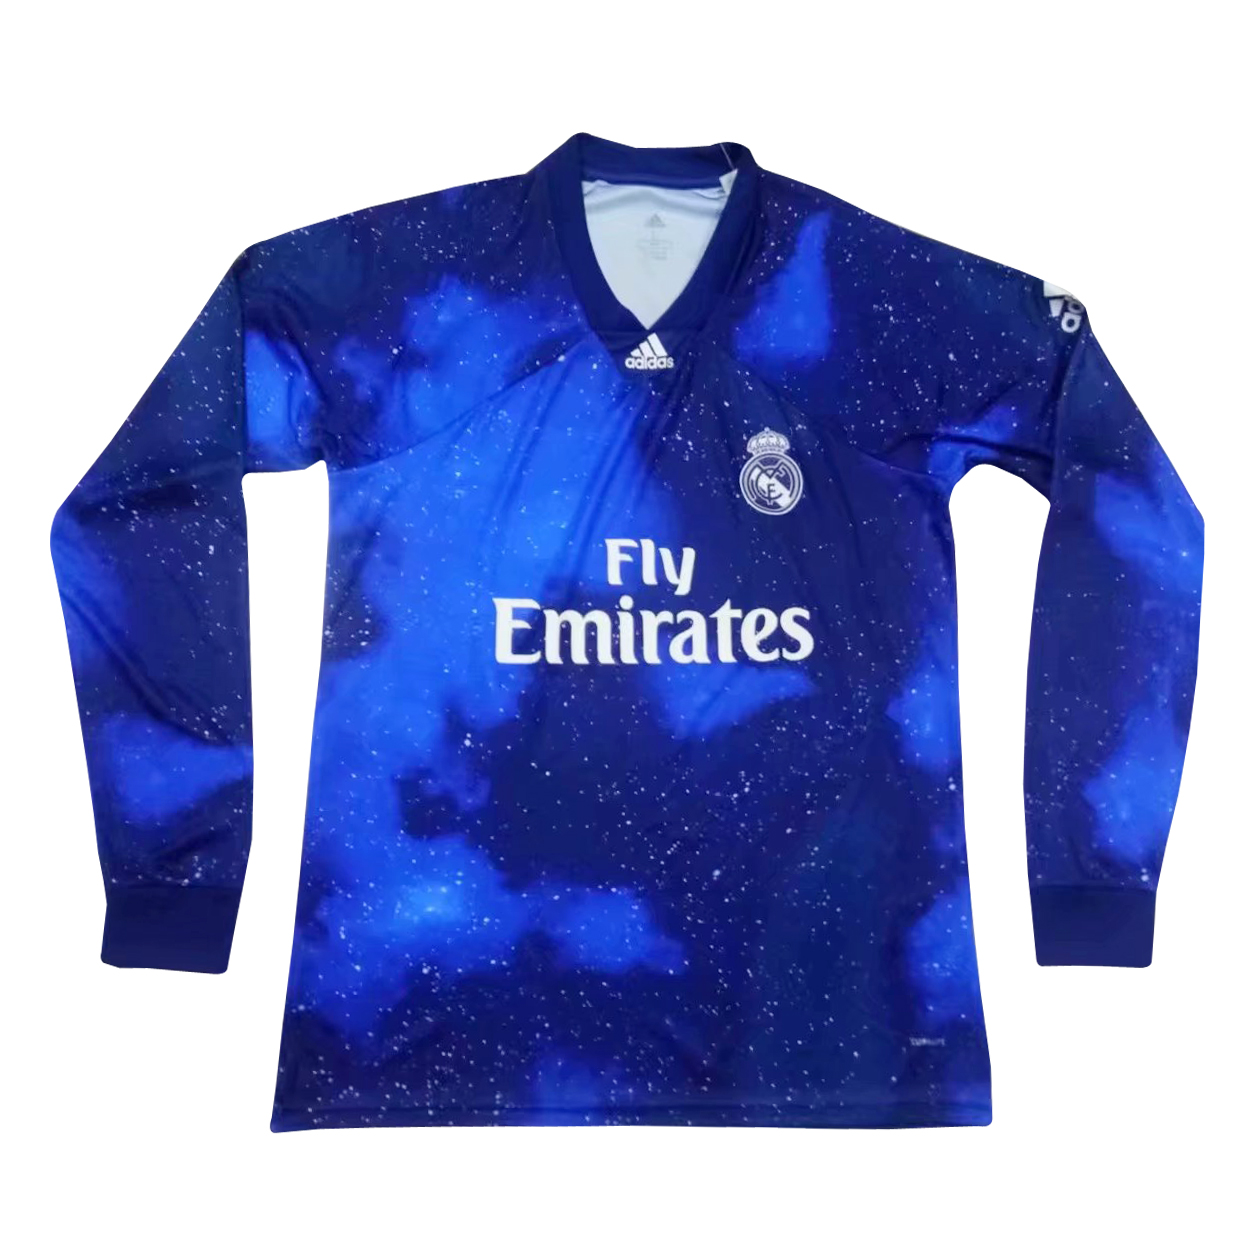 watch ca1f8 64db4 Real Madrid EA SPORTS Jersey Long Sleeve Men's 2018/19